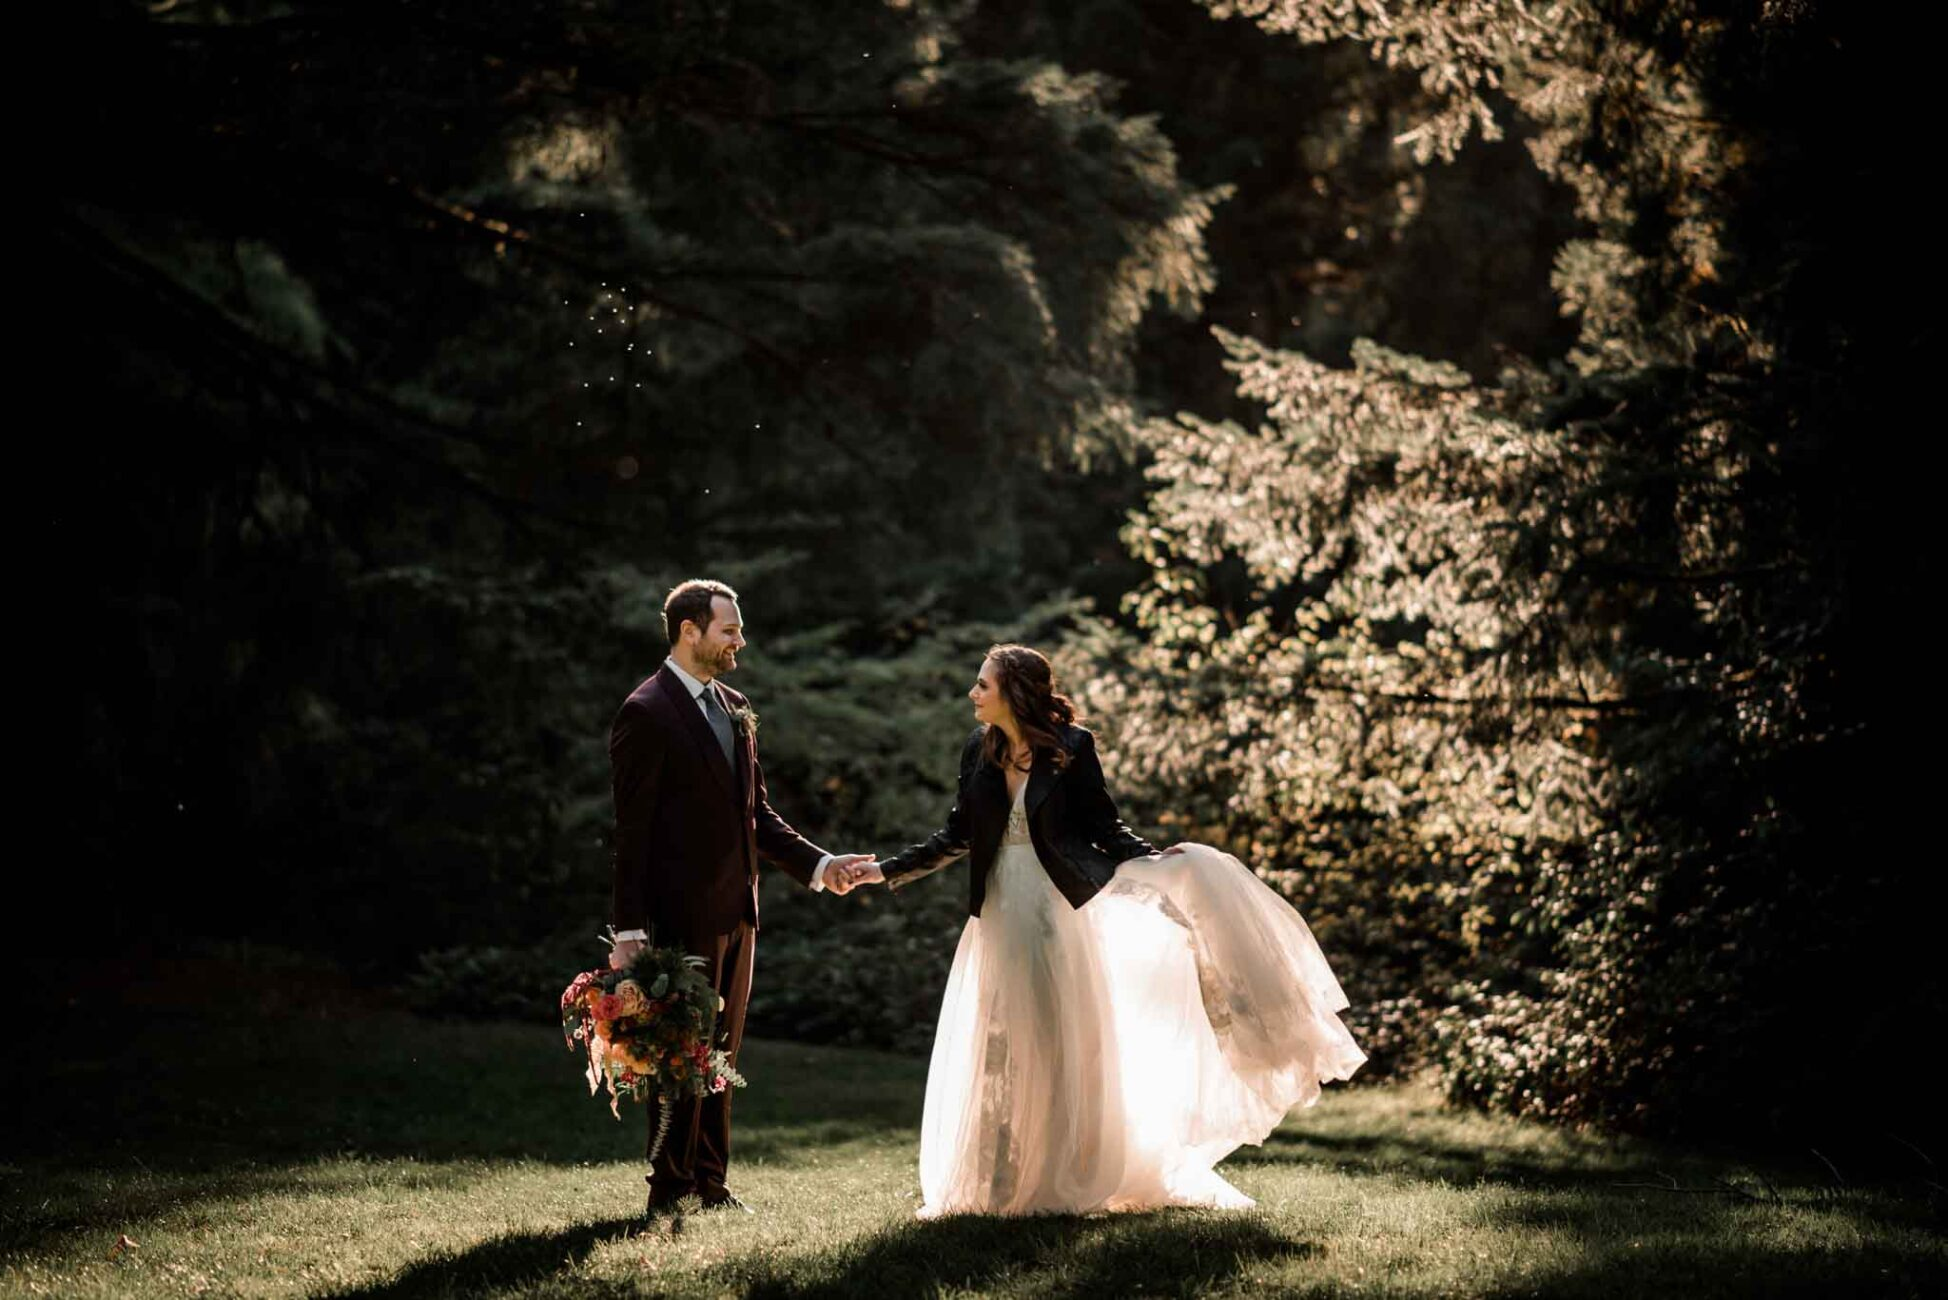 Dreamy sunlight at this intimate elopement at the Redwood Deck Hoyt Arboretum, Oregon.